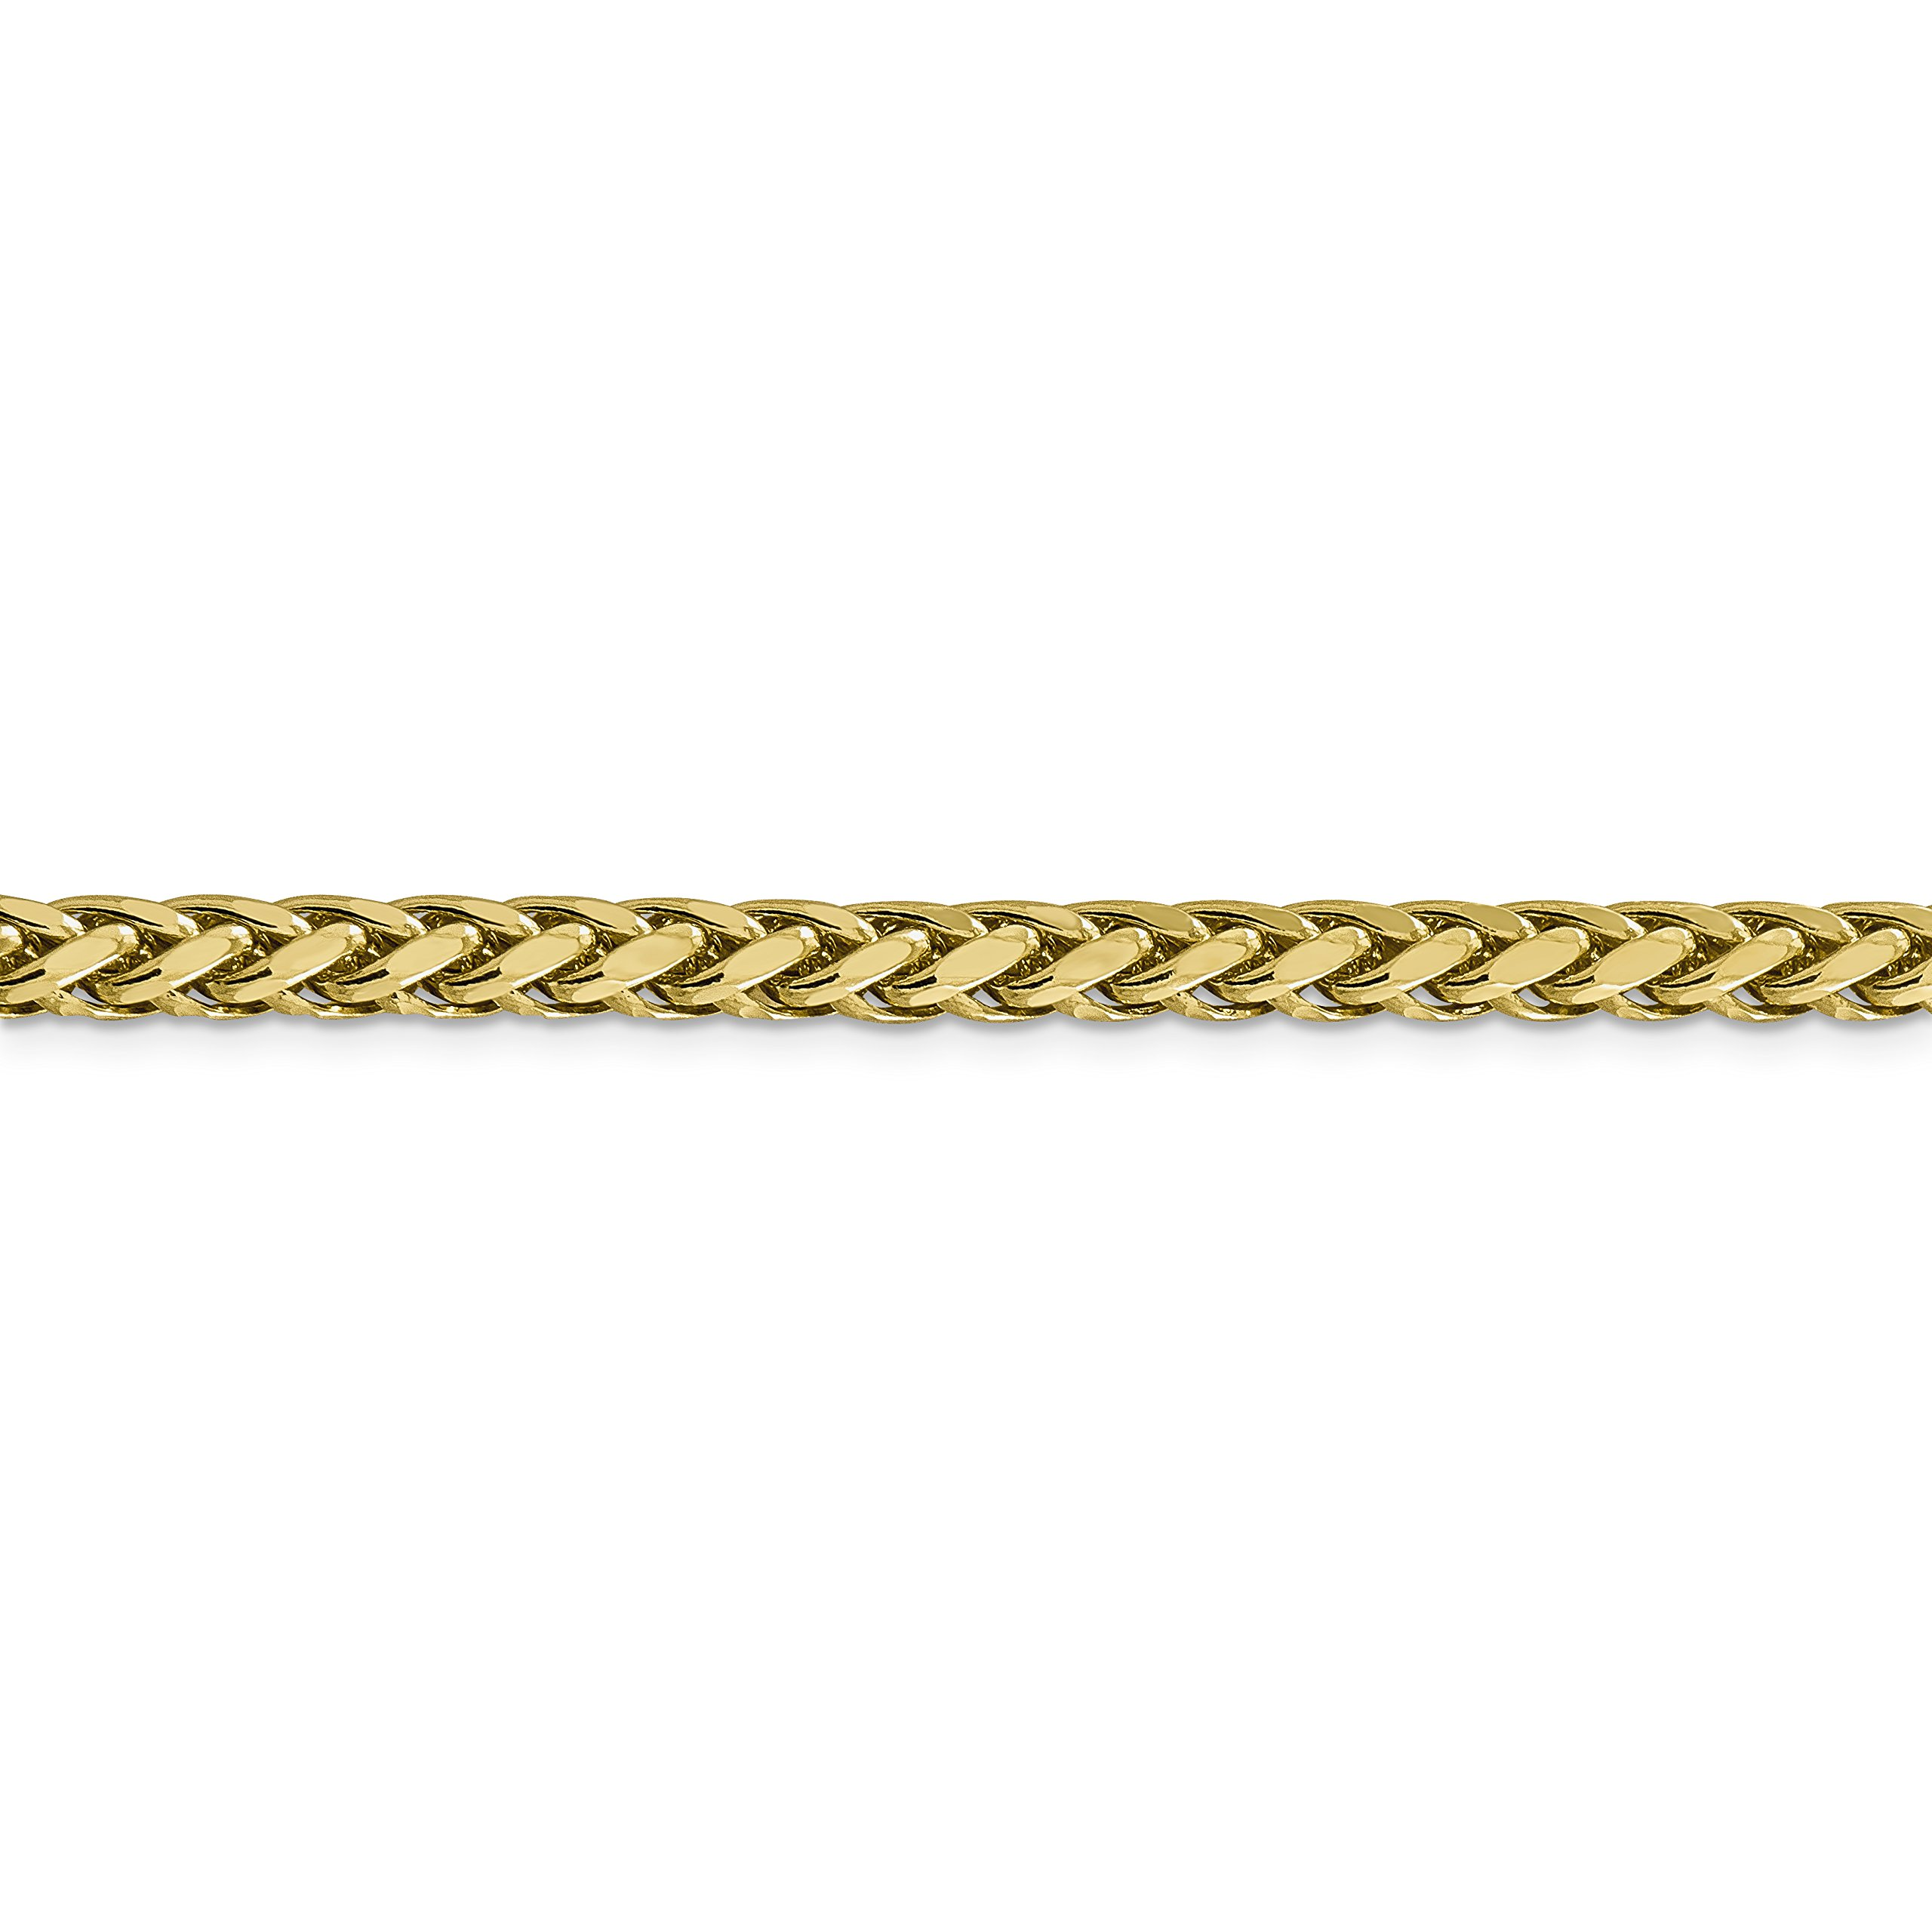 ICE CARATS 14k Yellow Gold 5mm Link Wheat Chain Necklace 18 Inch Spiga Oval Fine Jewelry Gift Set For Women Heart by ICE CARATS (Image #3)